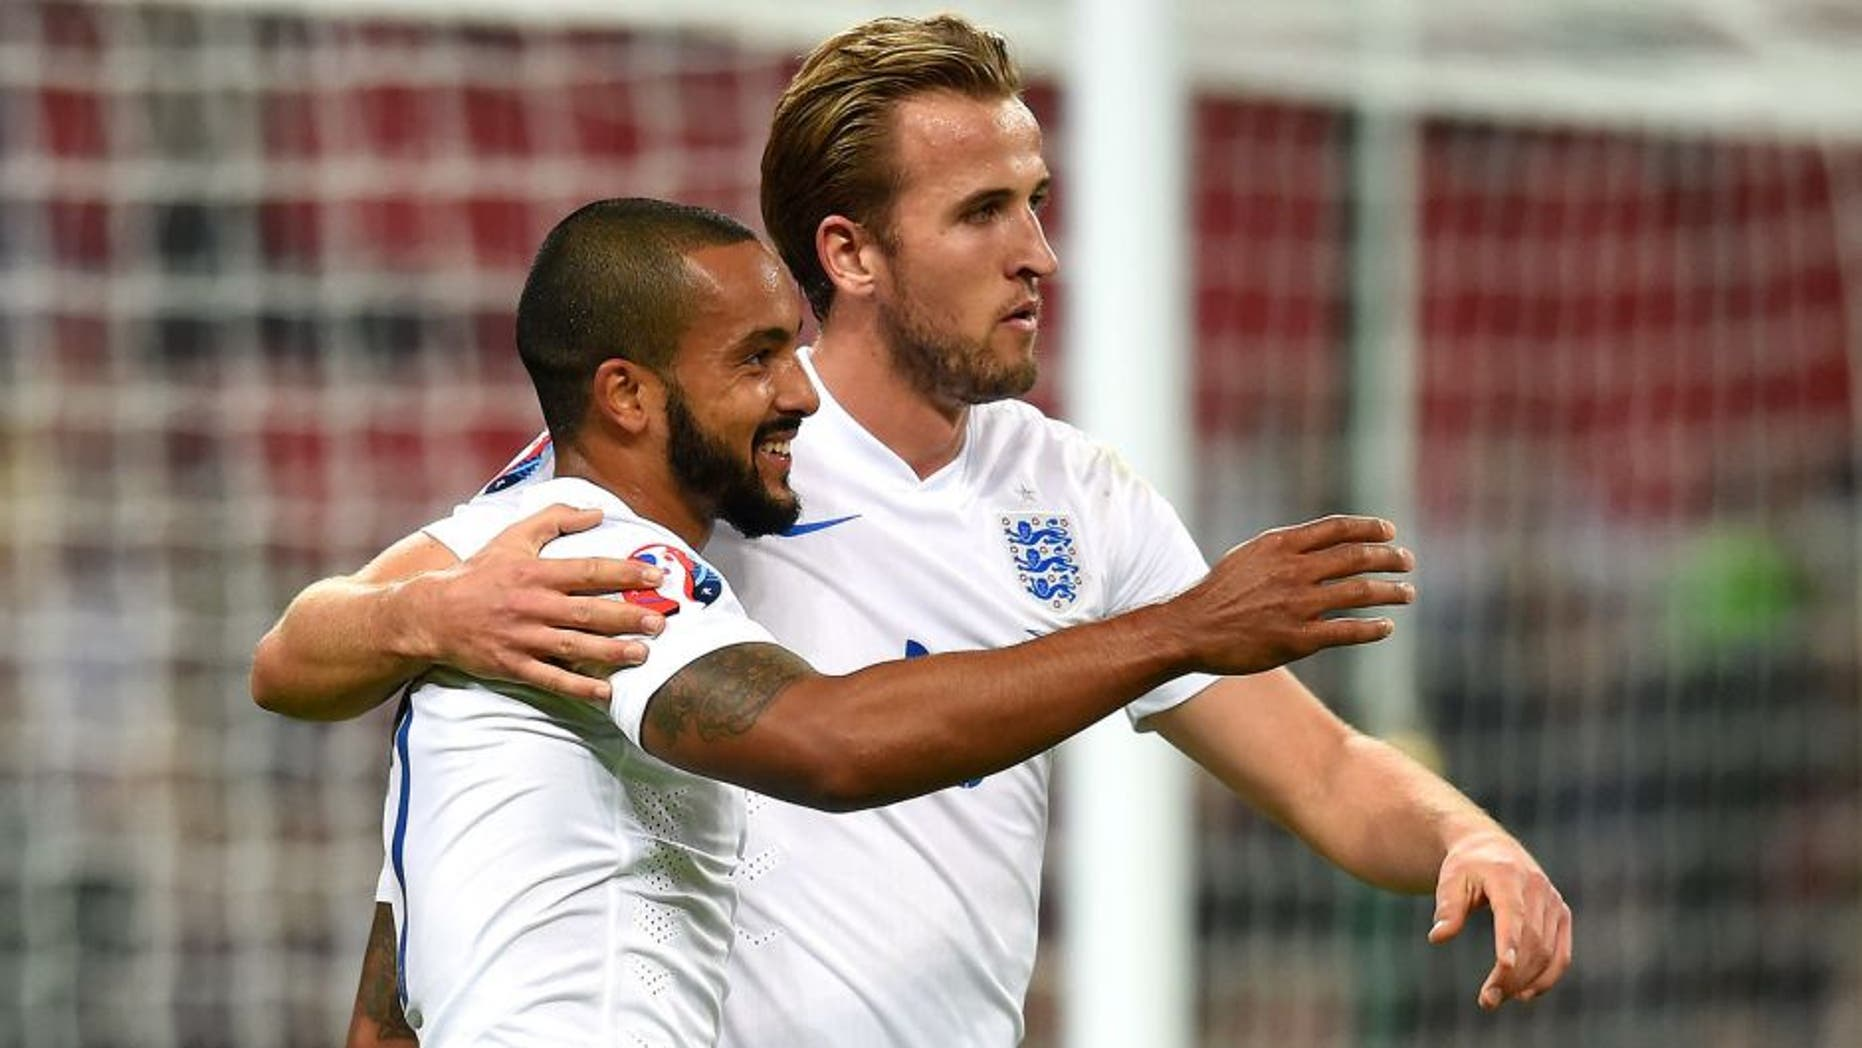 LONDON, ENGLAND - OCTOBER 09: Theo Walcott and Harry Kane of England celebrate after scoring the opening goal during the UEFA EURO 2016 Group E Qualifier match between England and Estonia at Wembley Stadium on October 9, 2015 in London, United Kingdom. (Photo by Michael Regan - The FA/The FA via Getty Images)